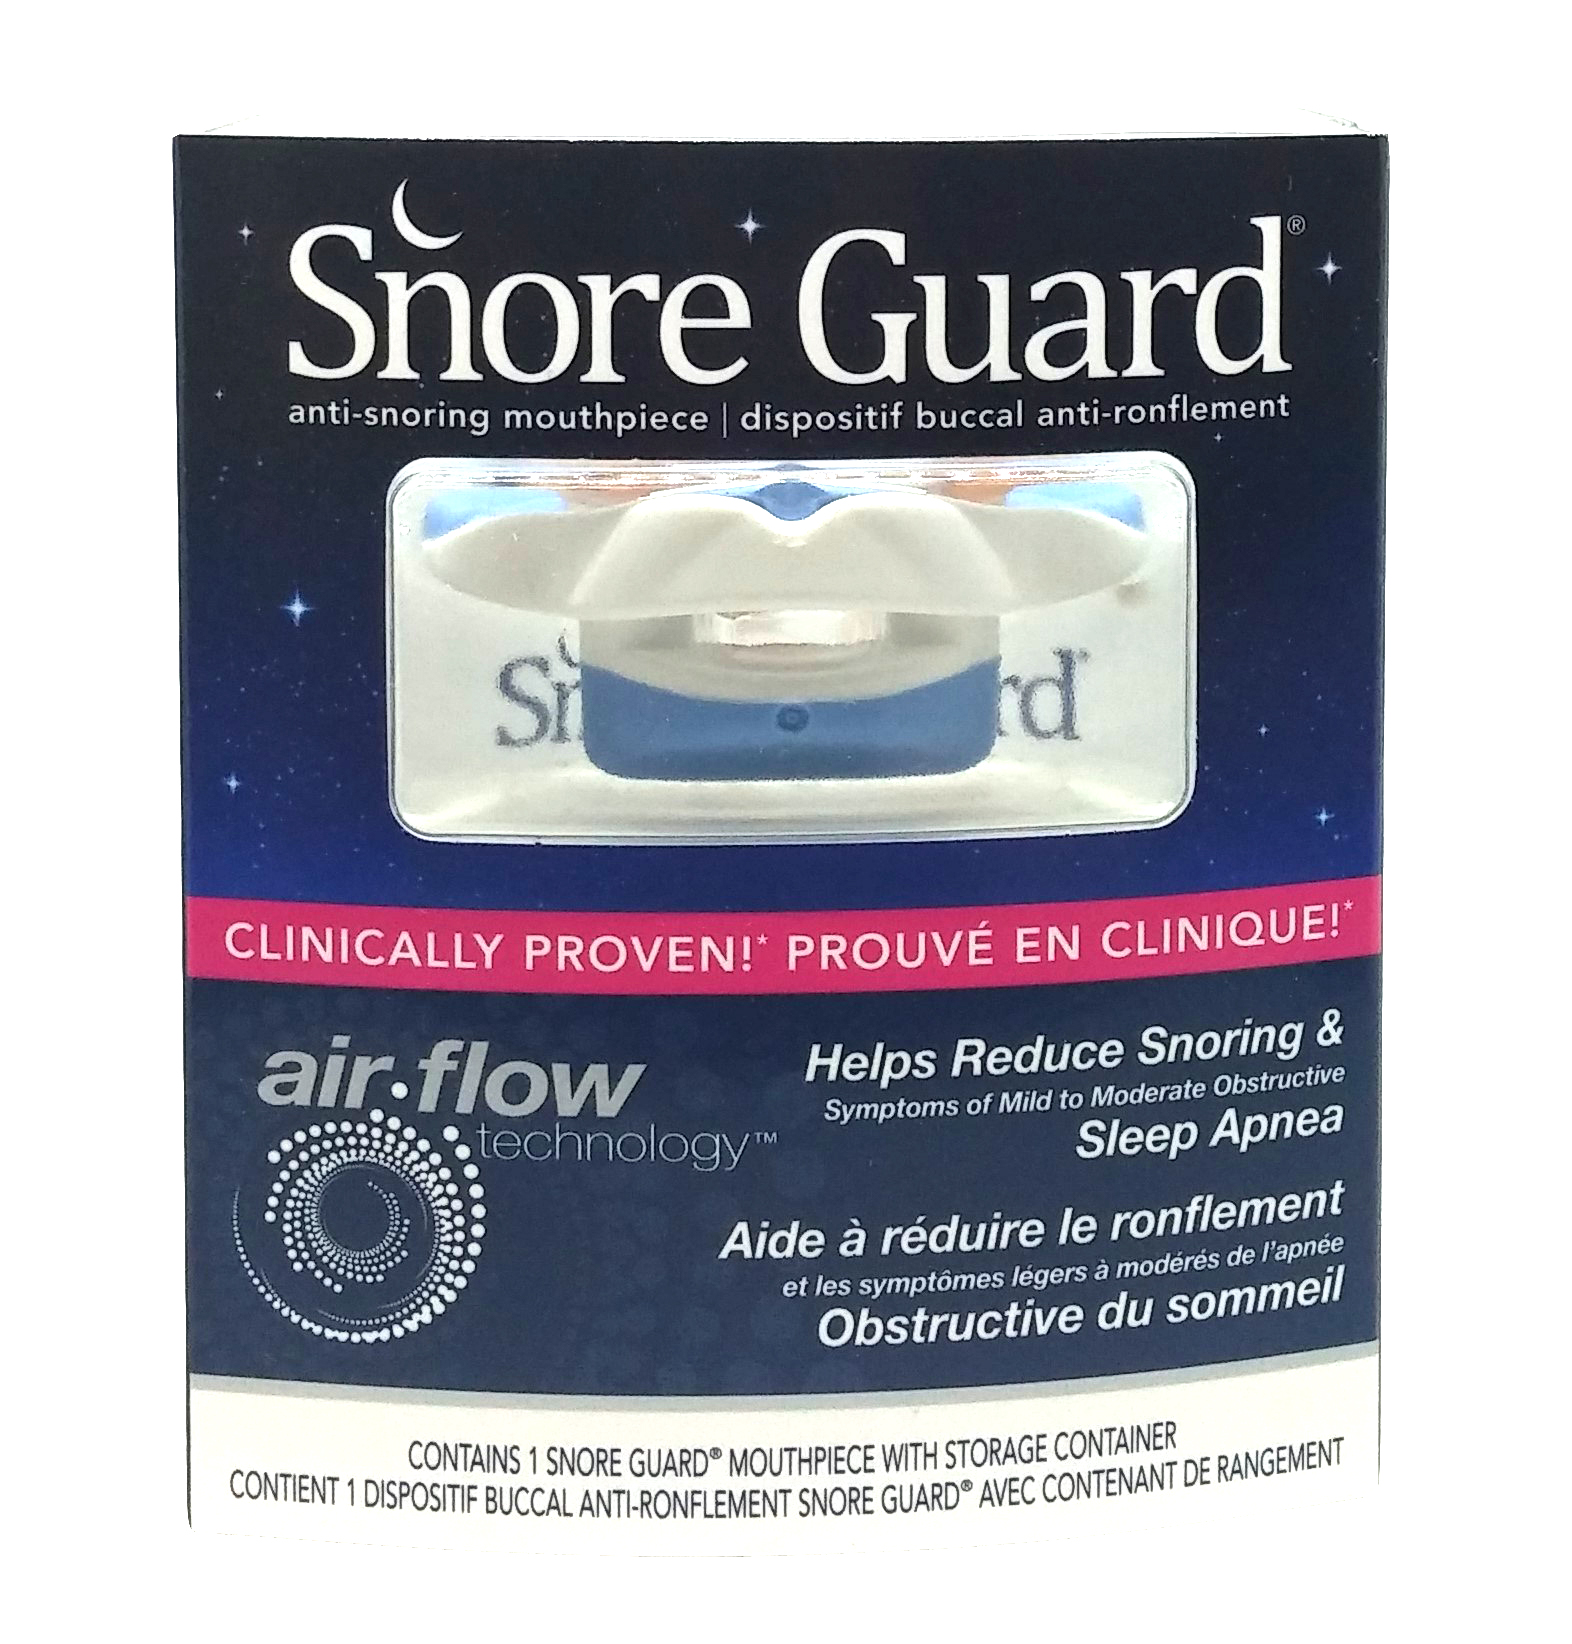 Snore Guard Anti-Snoring Mouthpiece, With Airflow Technology